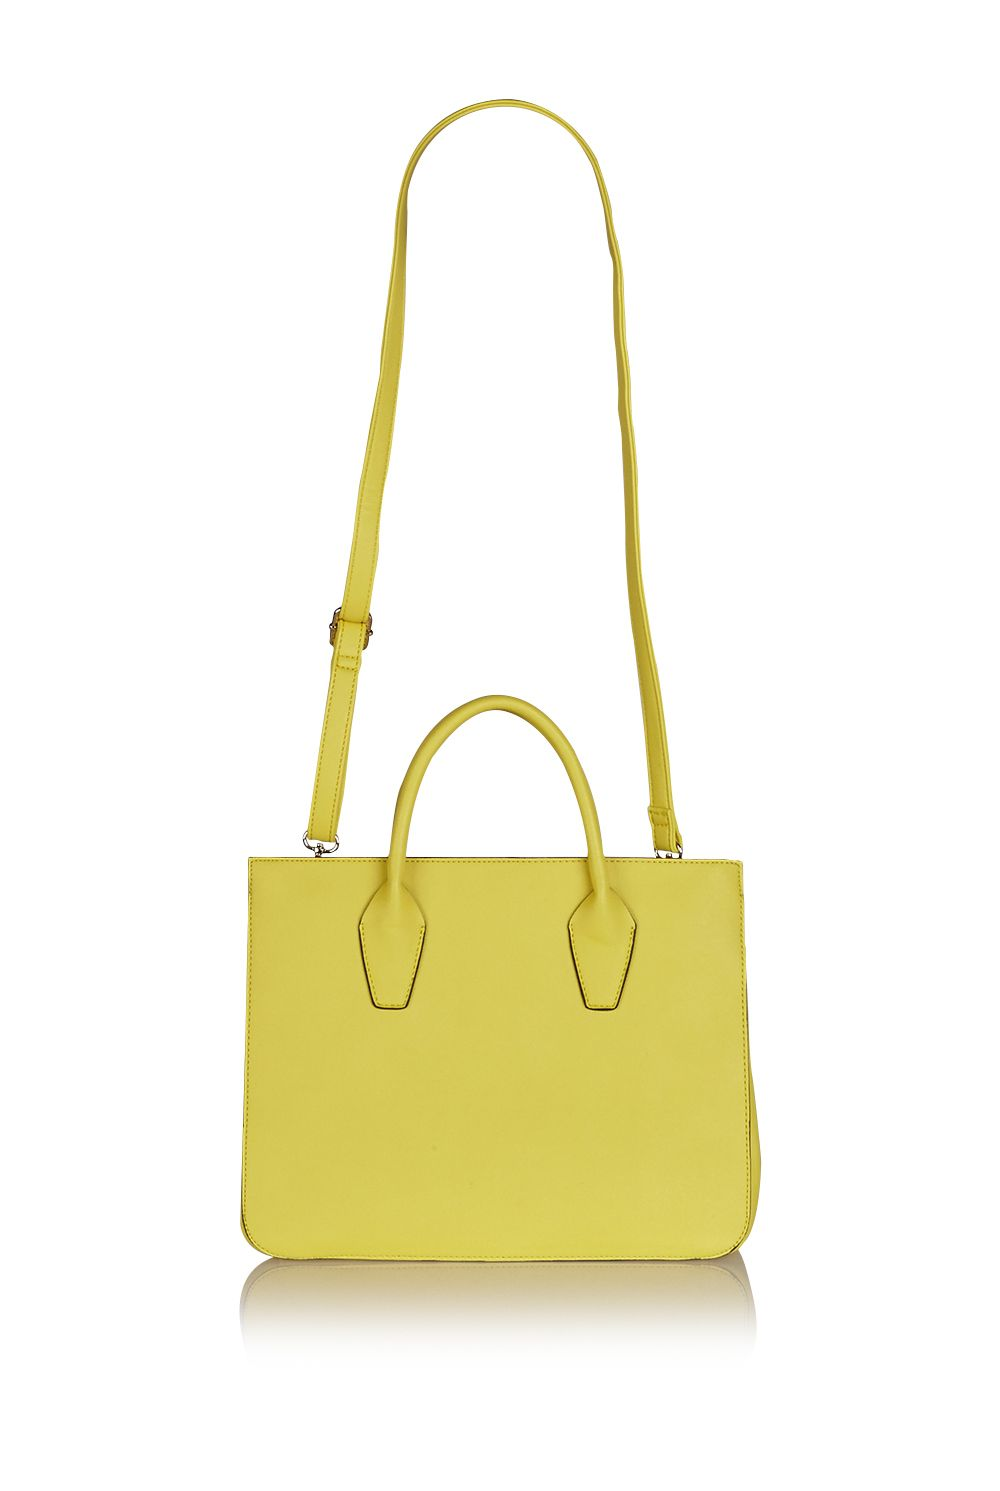 Sunflower tote handbag